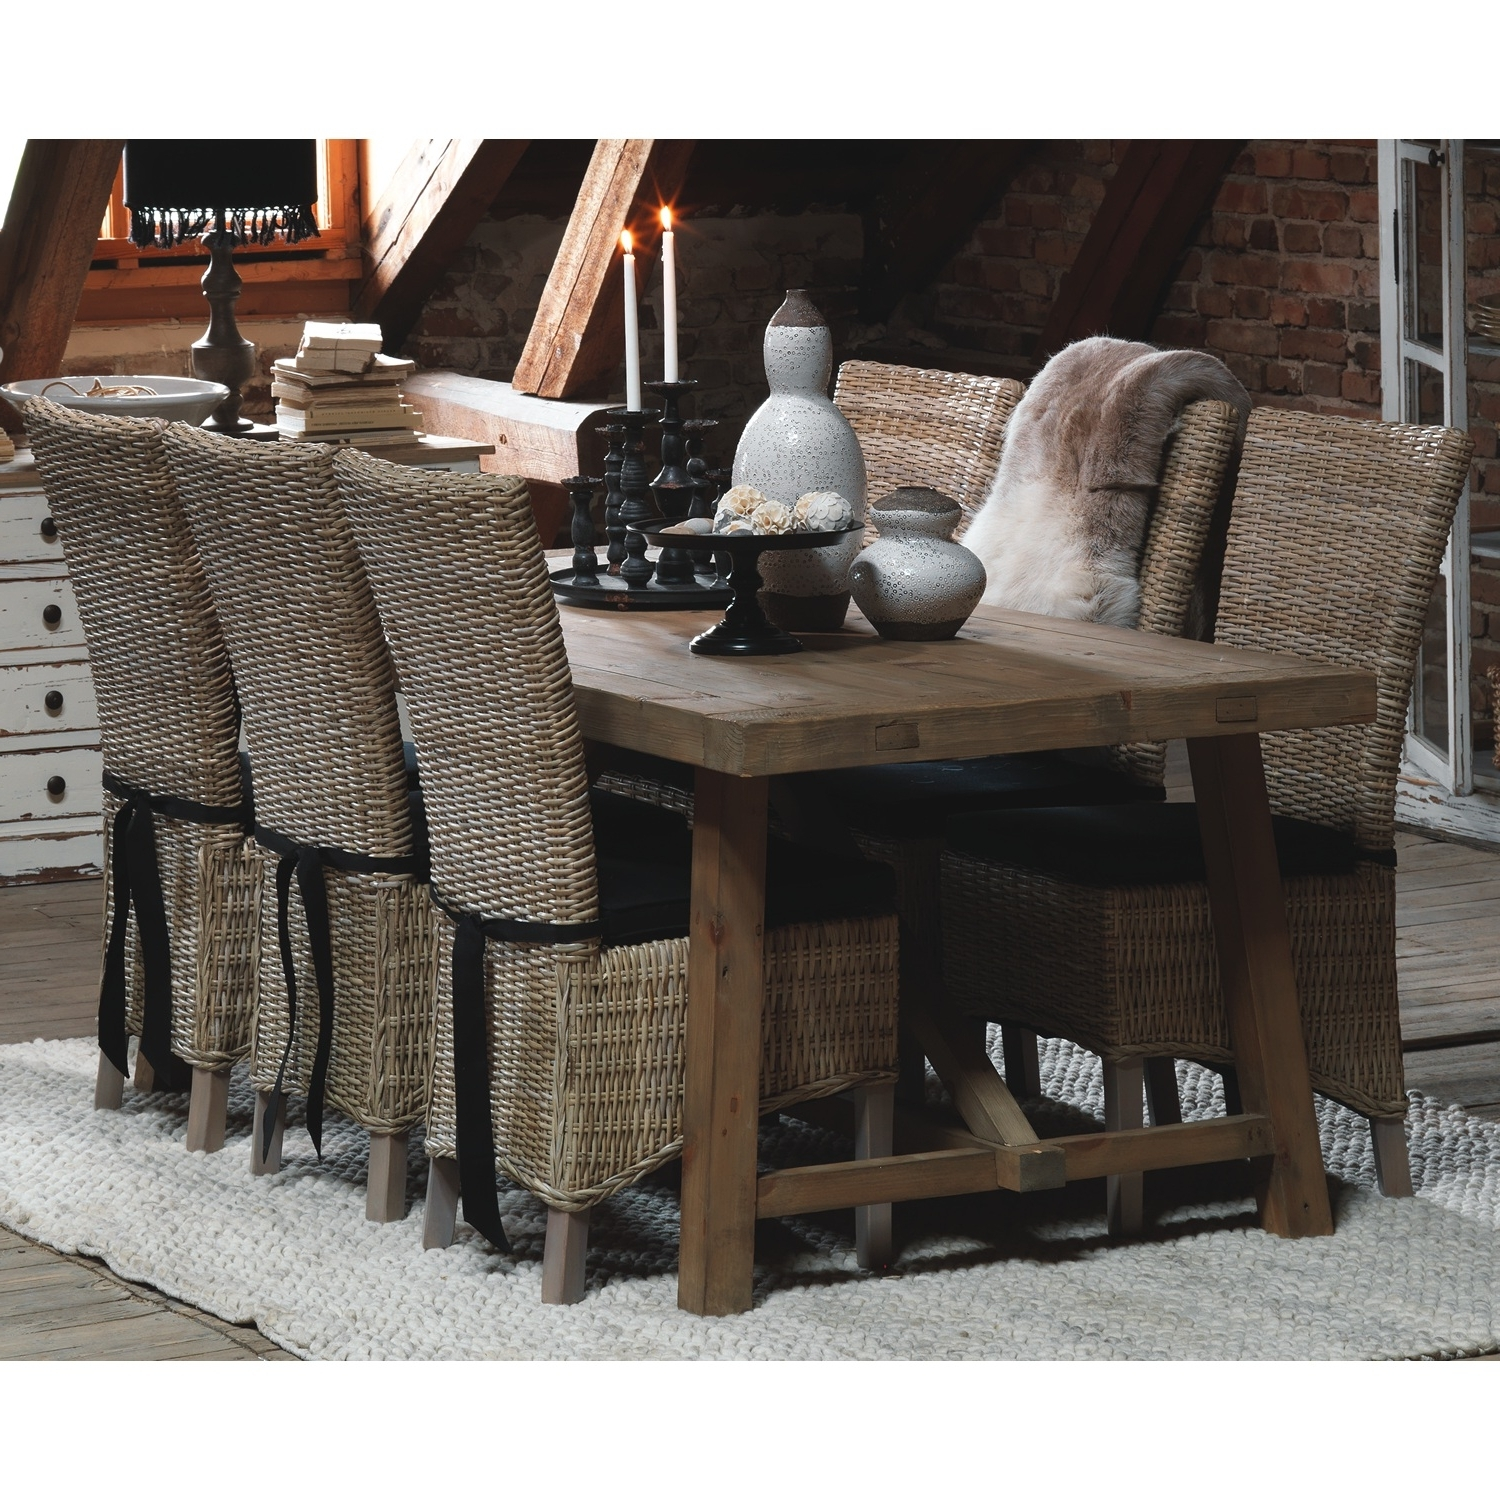 Home Decor Pertaining To Rattan Dining Tables And Chairs (View 7 of 25)